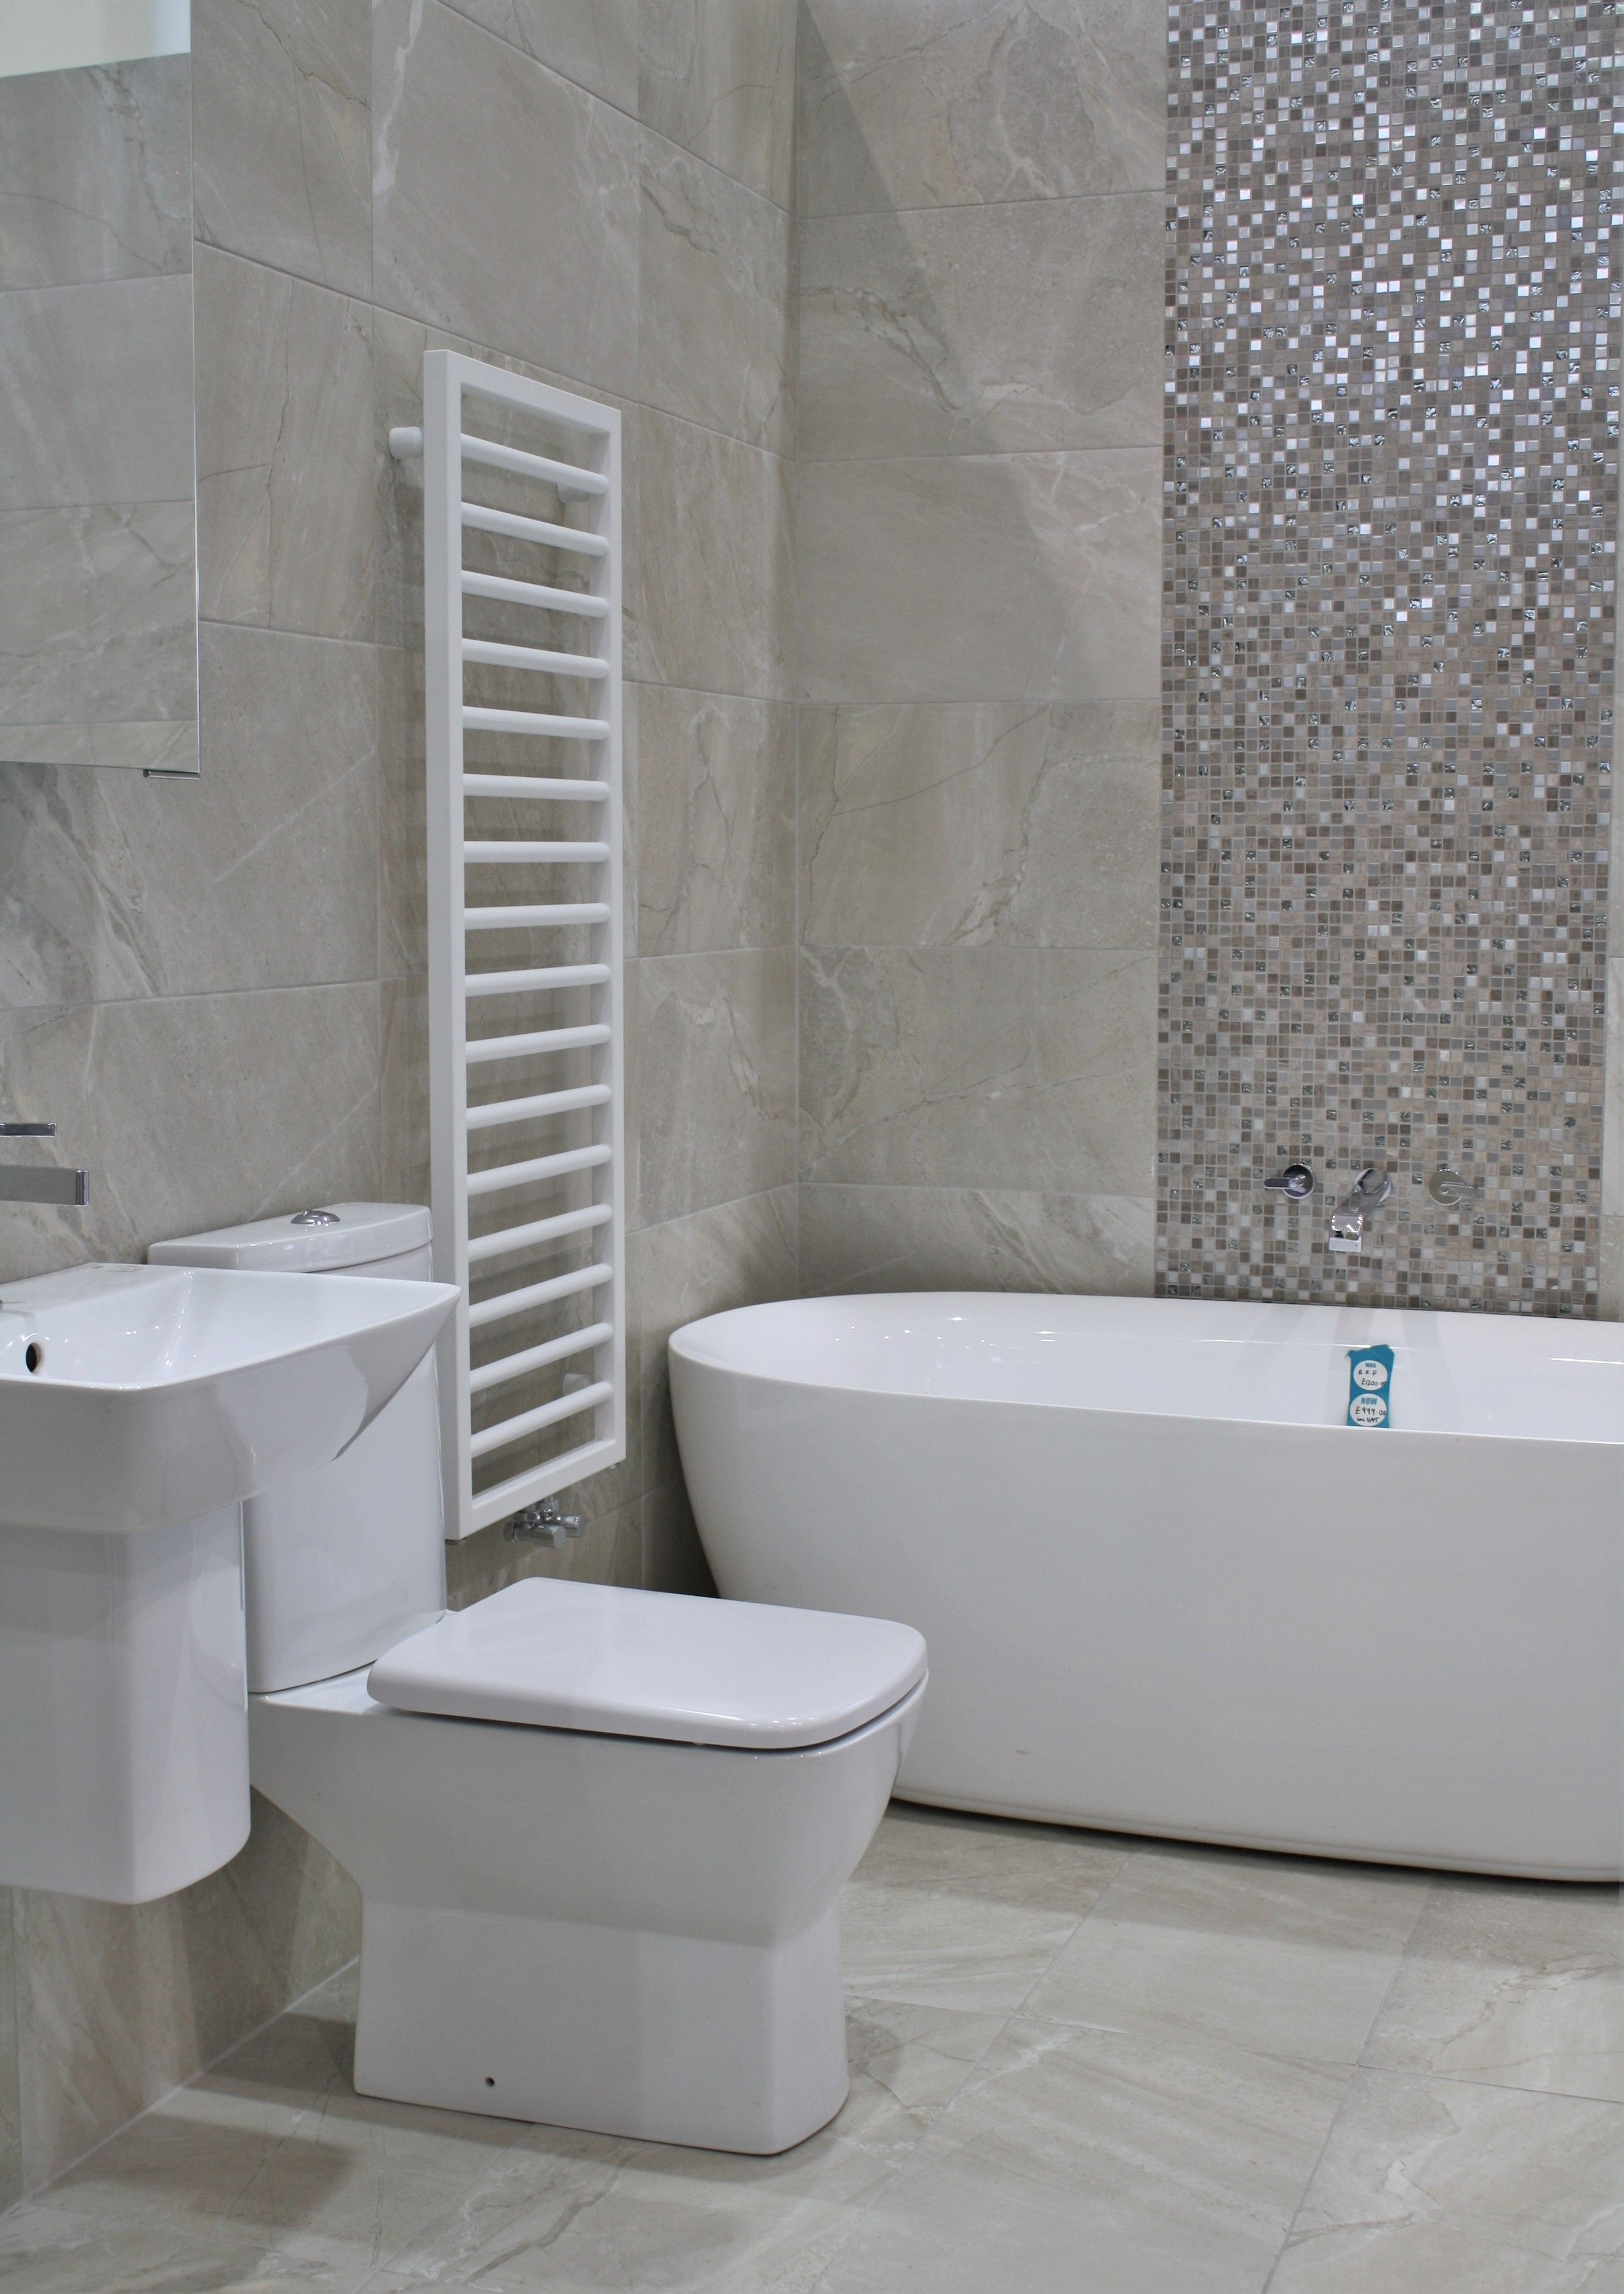 Perfect York Showroom Display. Stunning Range Of Styles On Display For Tile And  Bathroom Inspiration For Home Design Ideas